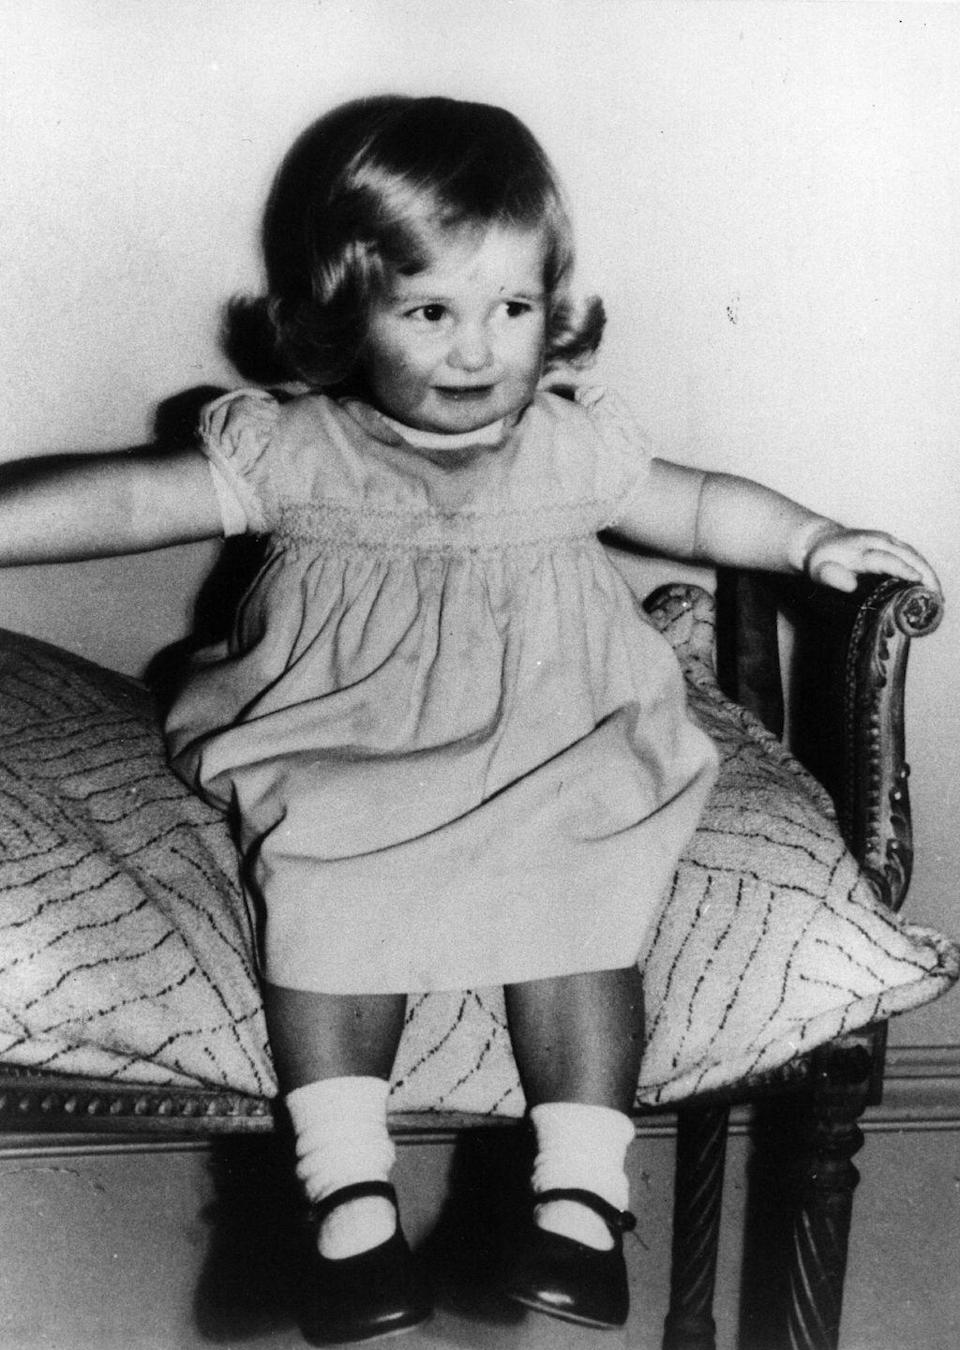 <p>In 1963, the adorable future royal posed for a photograph with precious curly hair and Mary Jane shoes. </p>